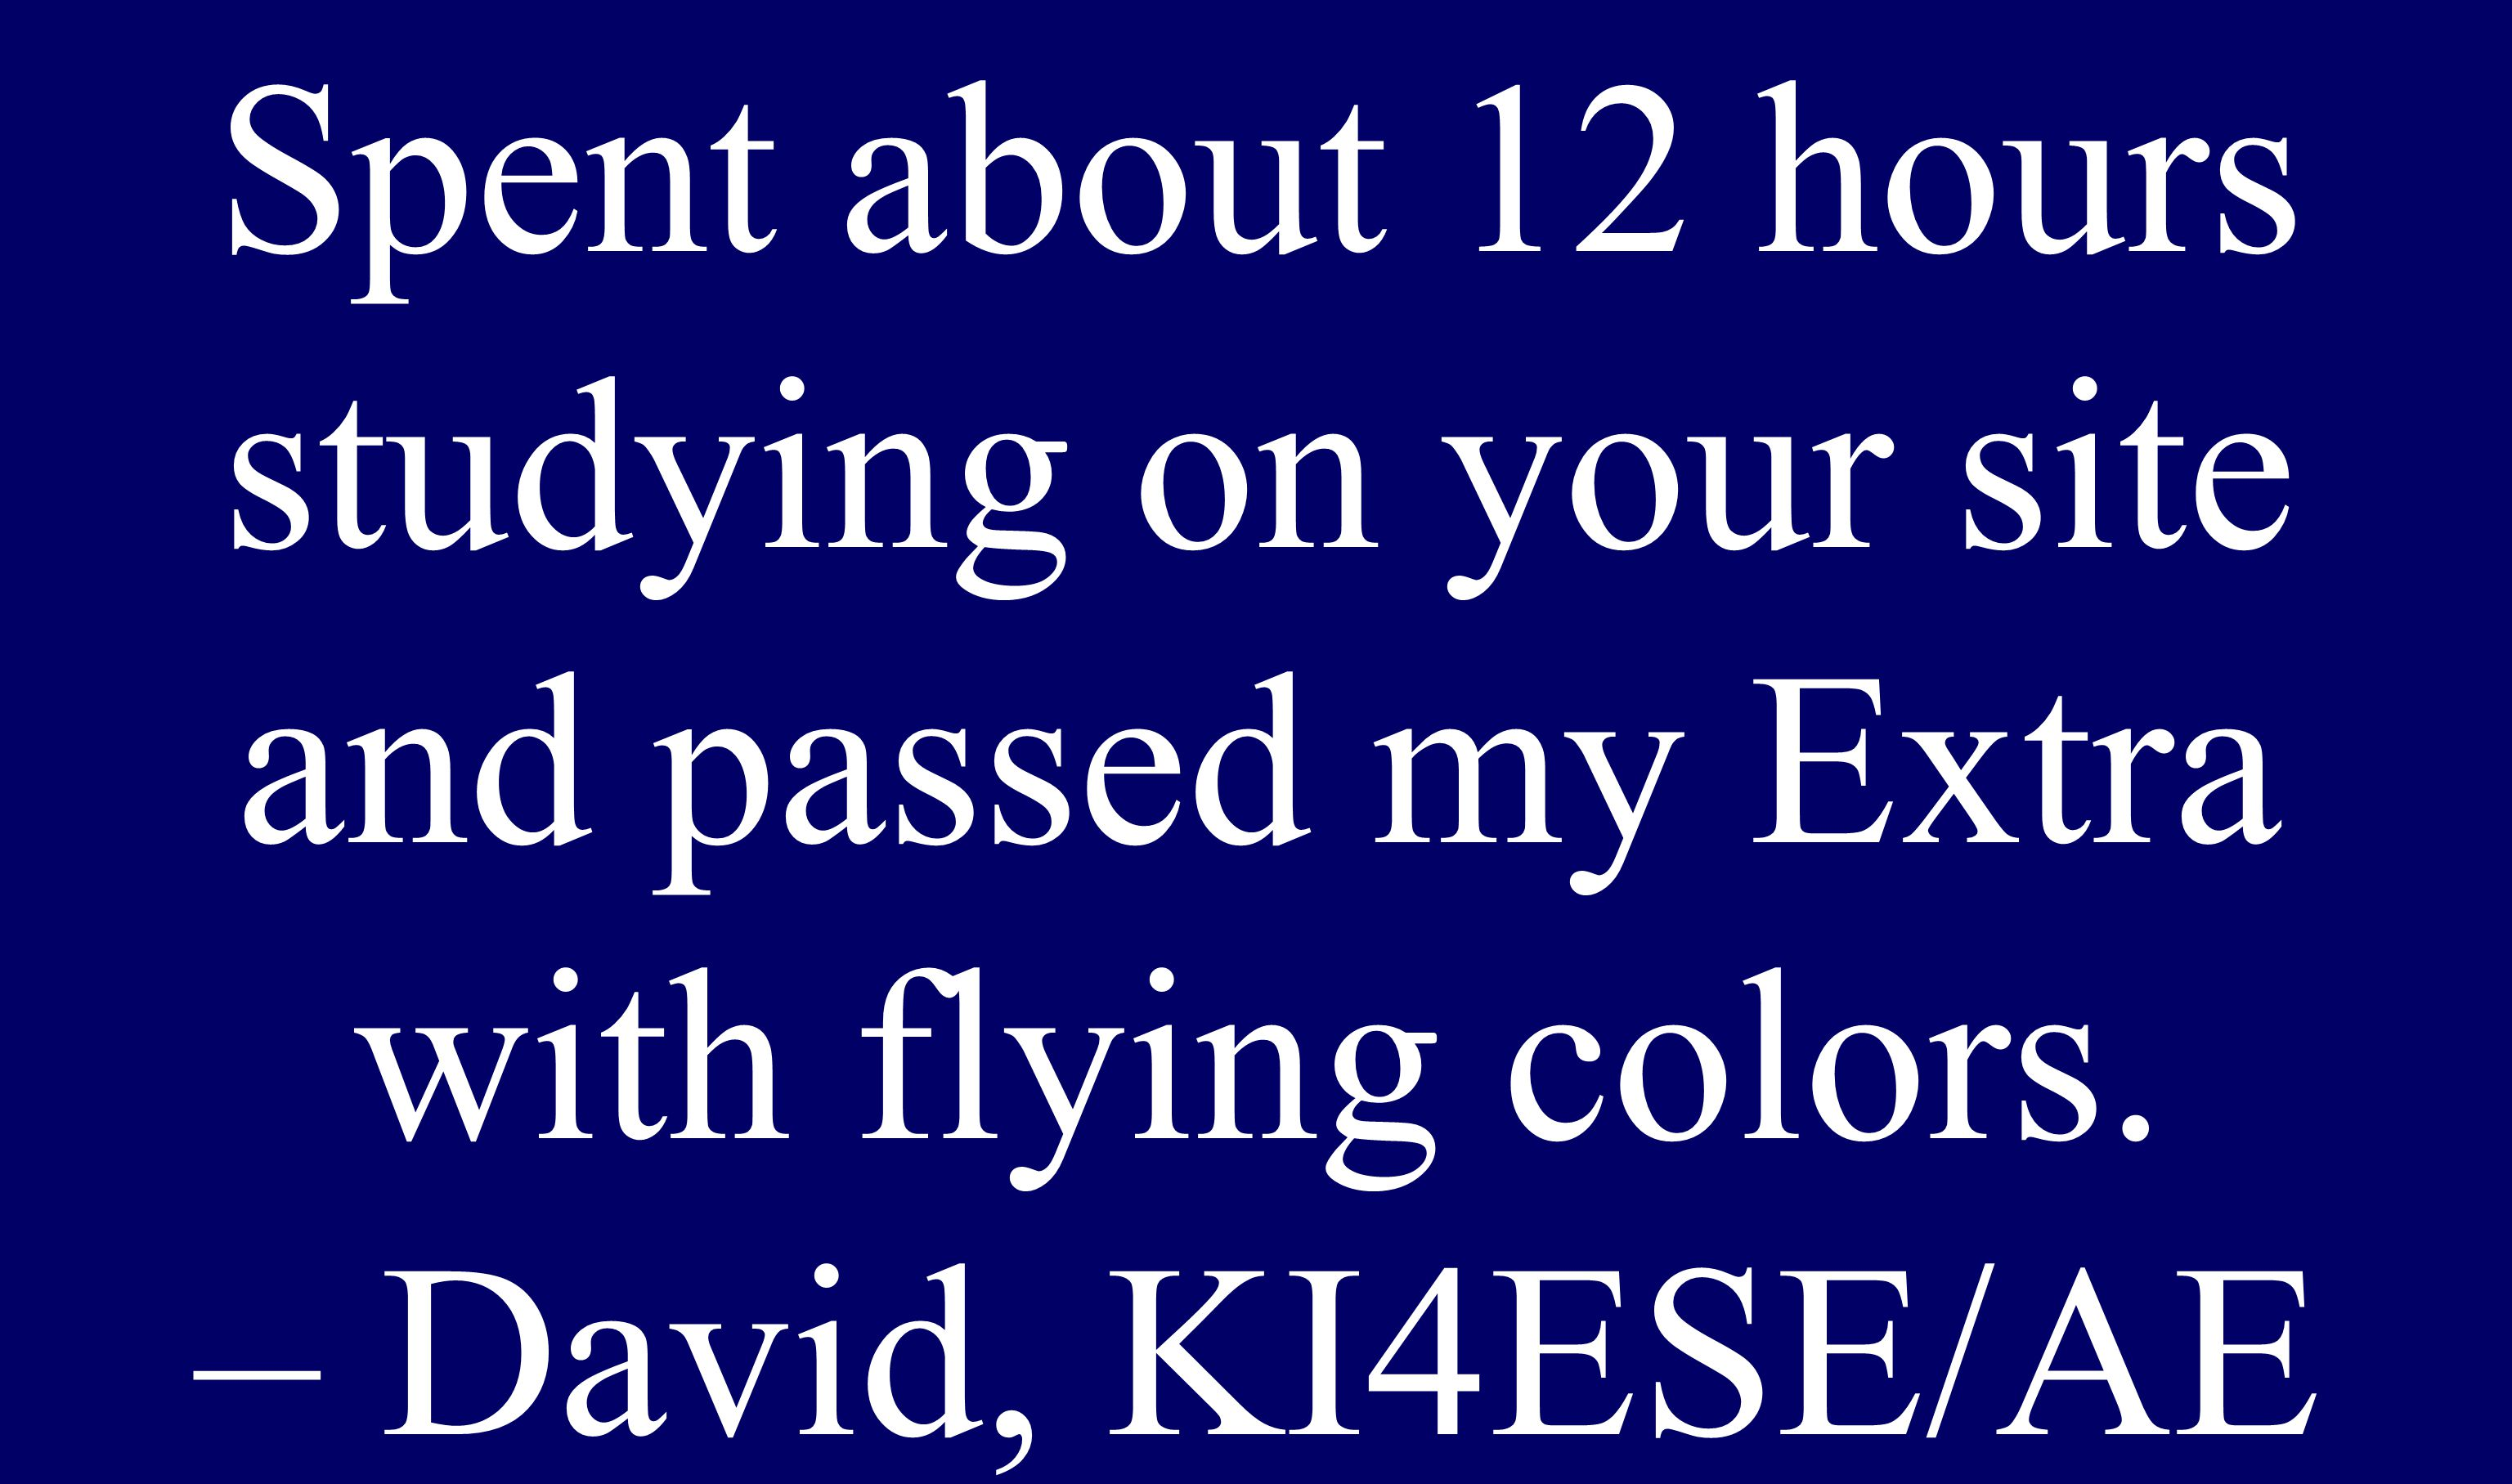 Upgrade Spent about 12 hours studying on your site and passed my Extra with flying colors. – David, KI4ESE/AE